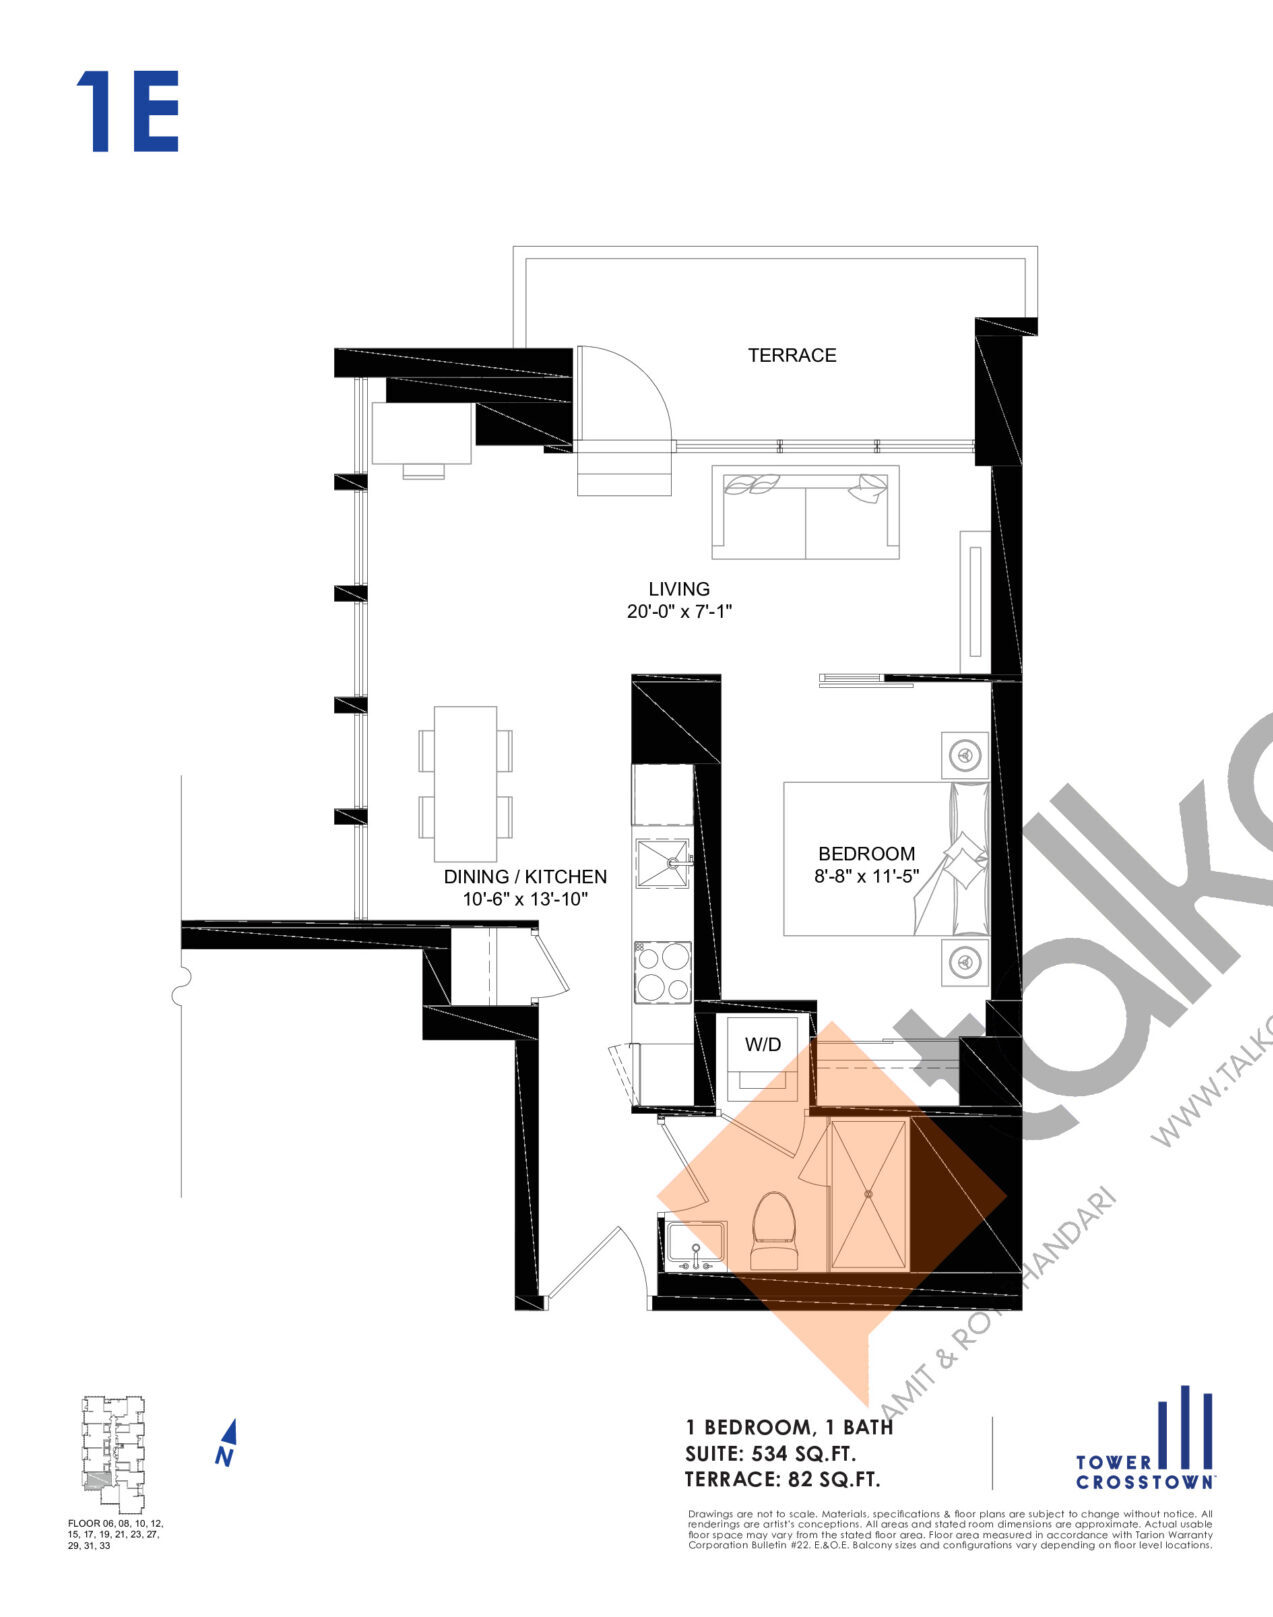 1E Floor Plan at Crosstown Tower 3 Condos - 534 sq.ft